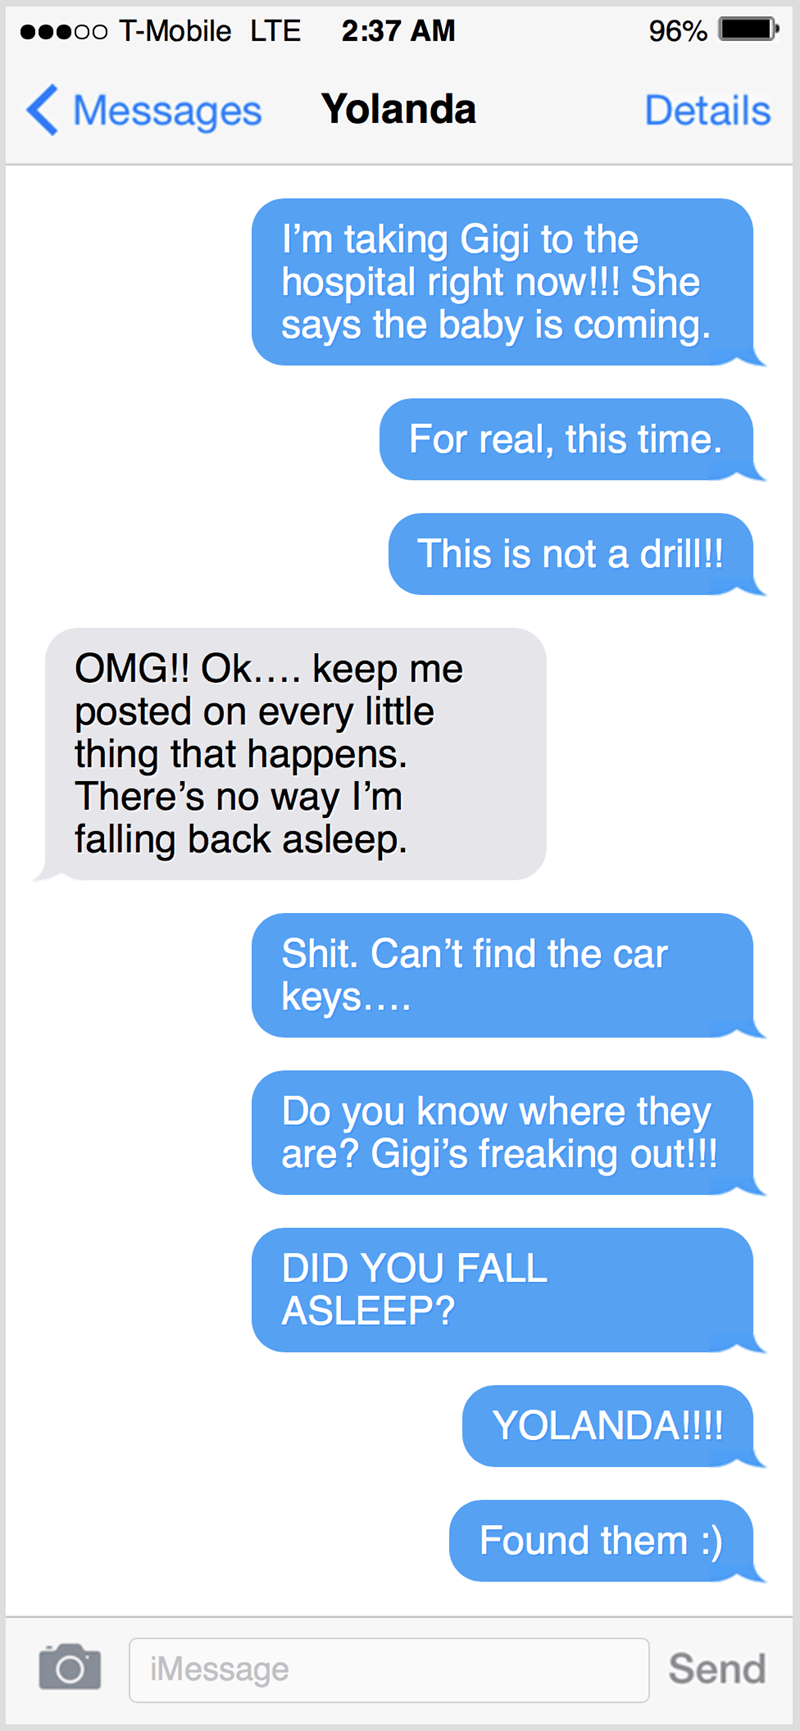 Text - o00 T-Mobile LTE 2:37 AM 96% ( Messages Yolanda Details I'm taking Gigi to the hospital right now!!! She says the baby is coming. For real, this time. This is not a drill!! OMG!! Ok.... keep me posted on every little thing that happens. There's no way I'm falling back asleep. Shit. Can't find the car keys.... Do you know where they are? Gigi's freaking out!! DID YOU FALL ASLEEP? YOLANDA!!!! Found them :) iMessage Send